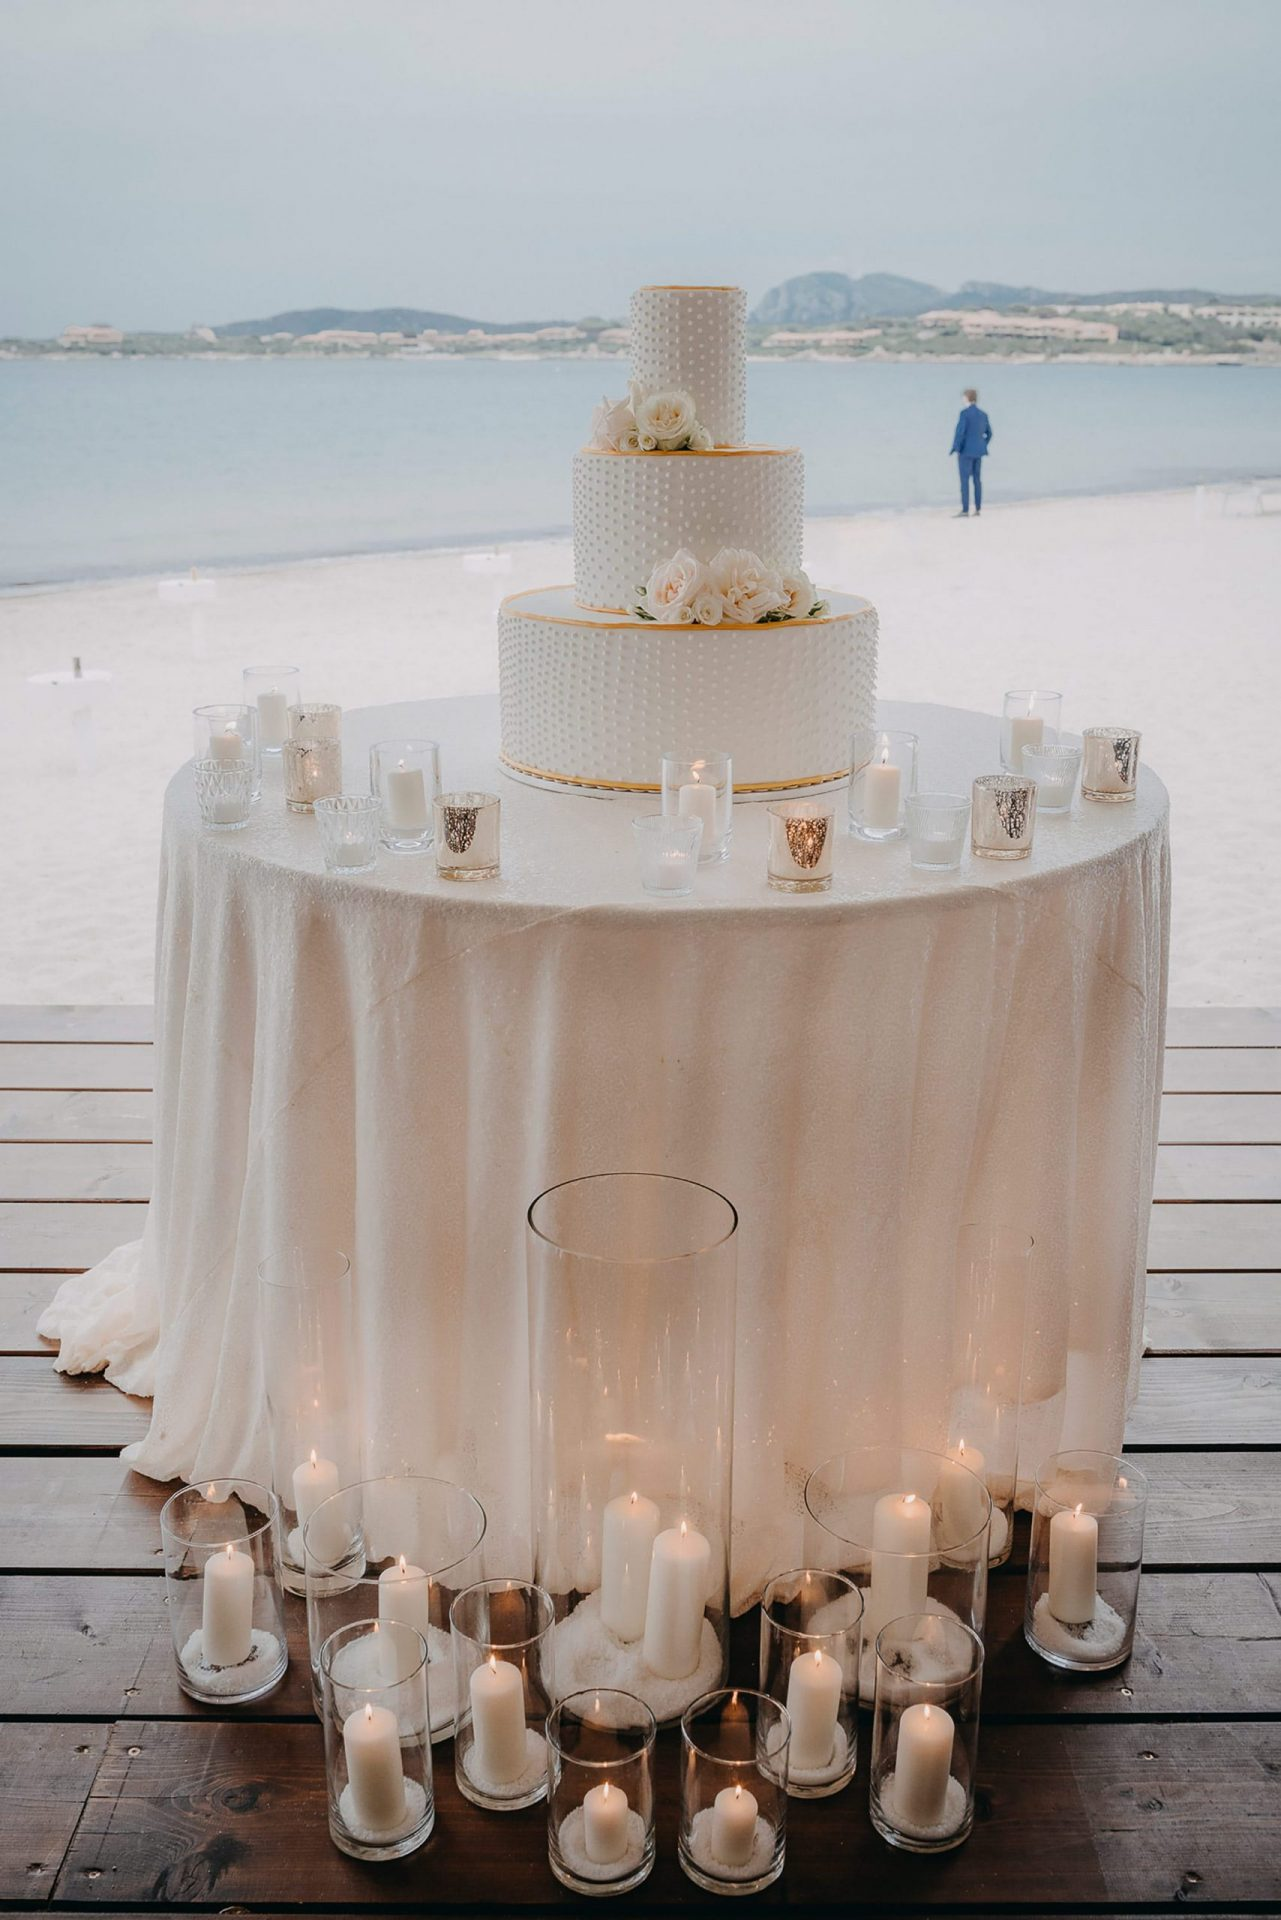 Luca and Anj, the wedding cake table by the beach